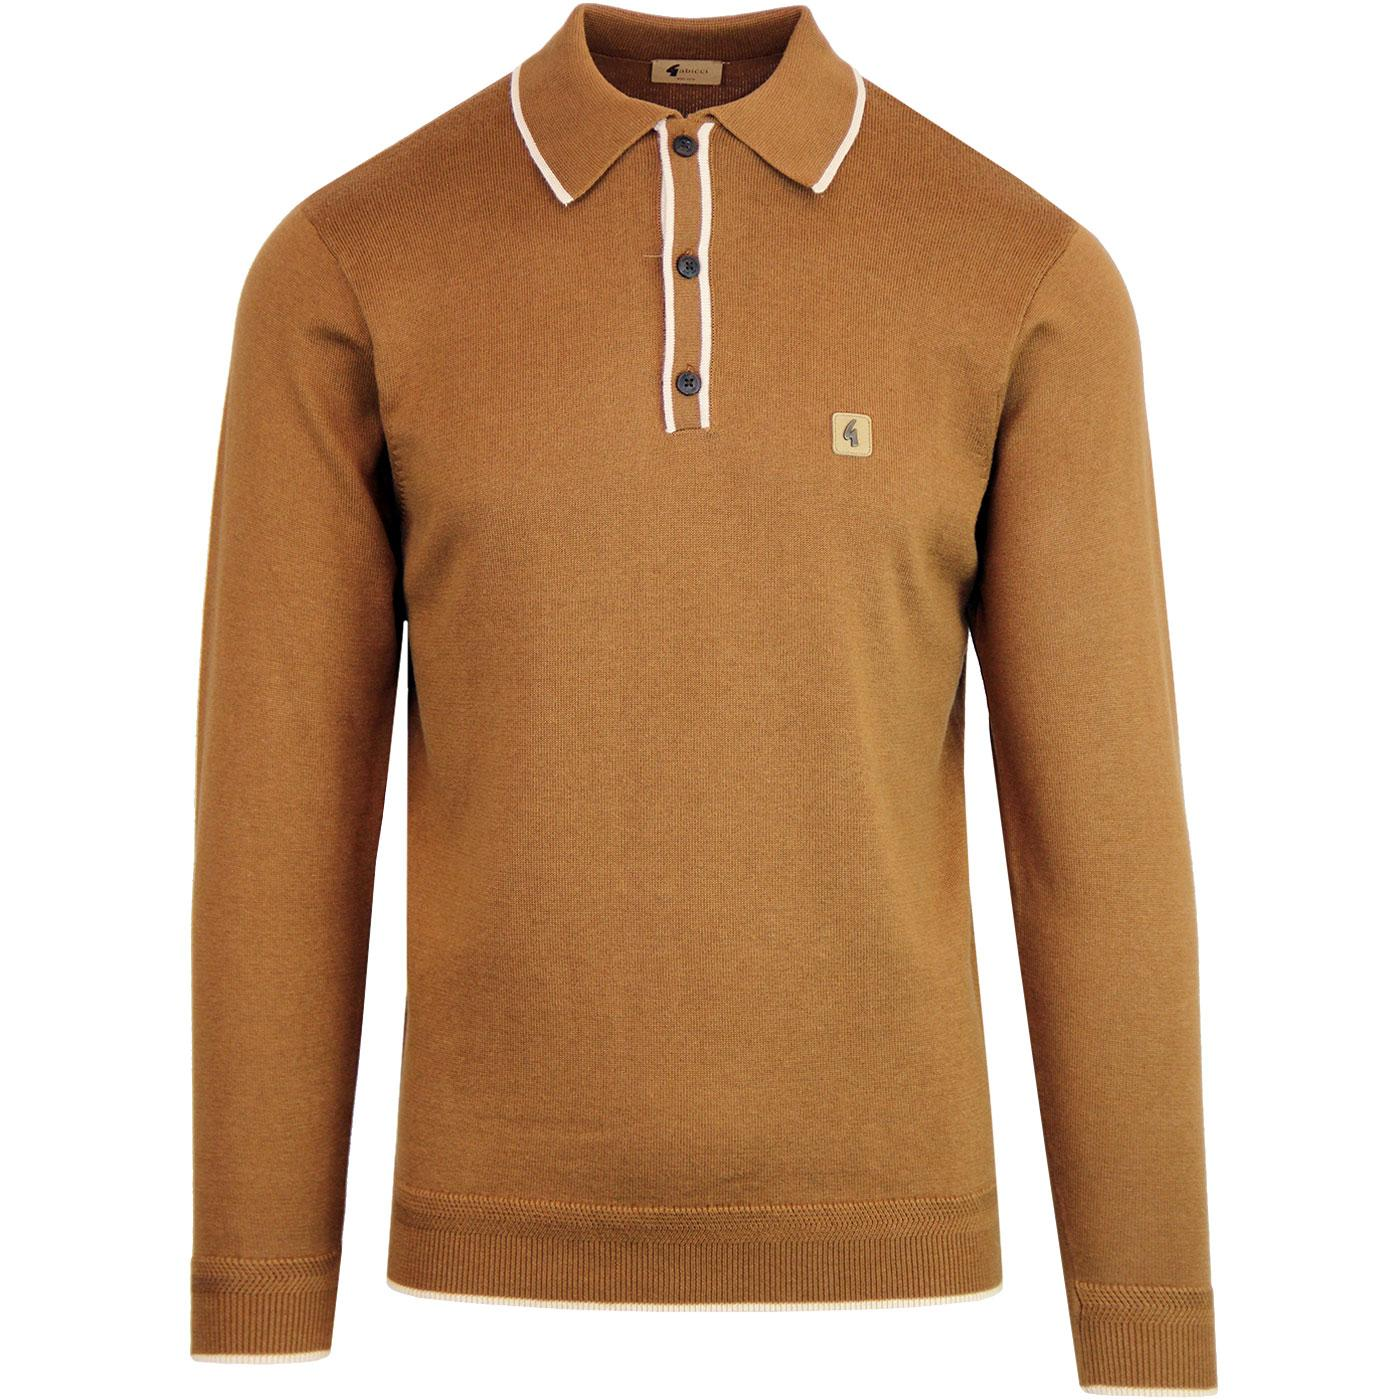 Lineker GABICCI VINTAGE Mod Knitted Tipped Polo T